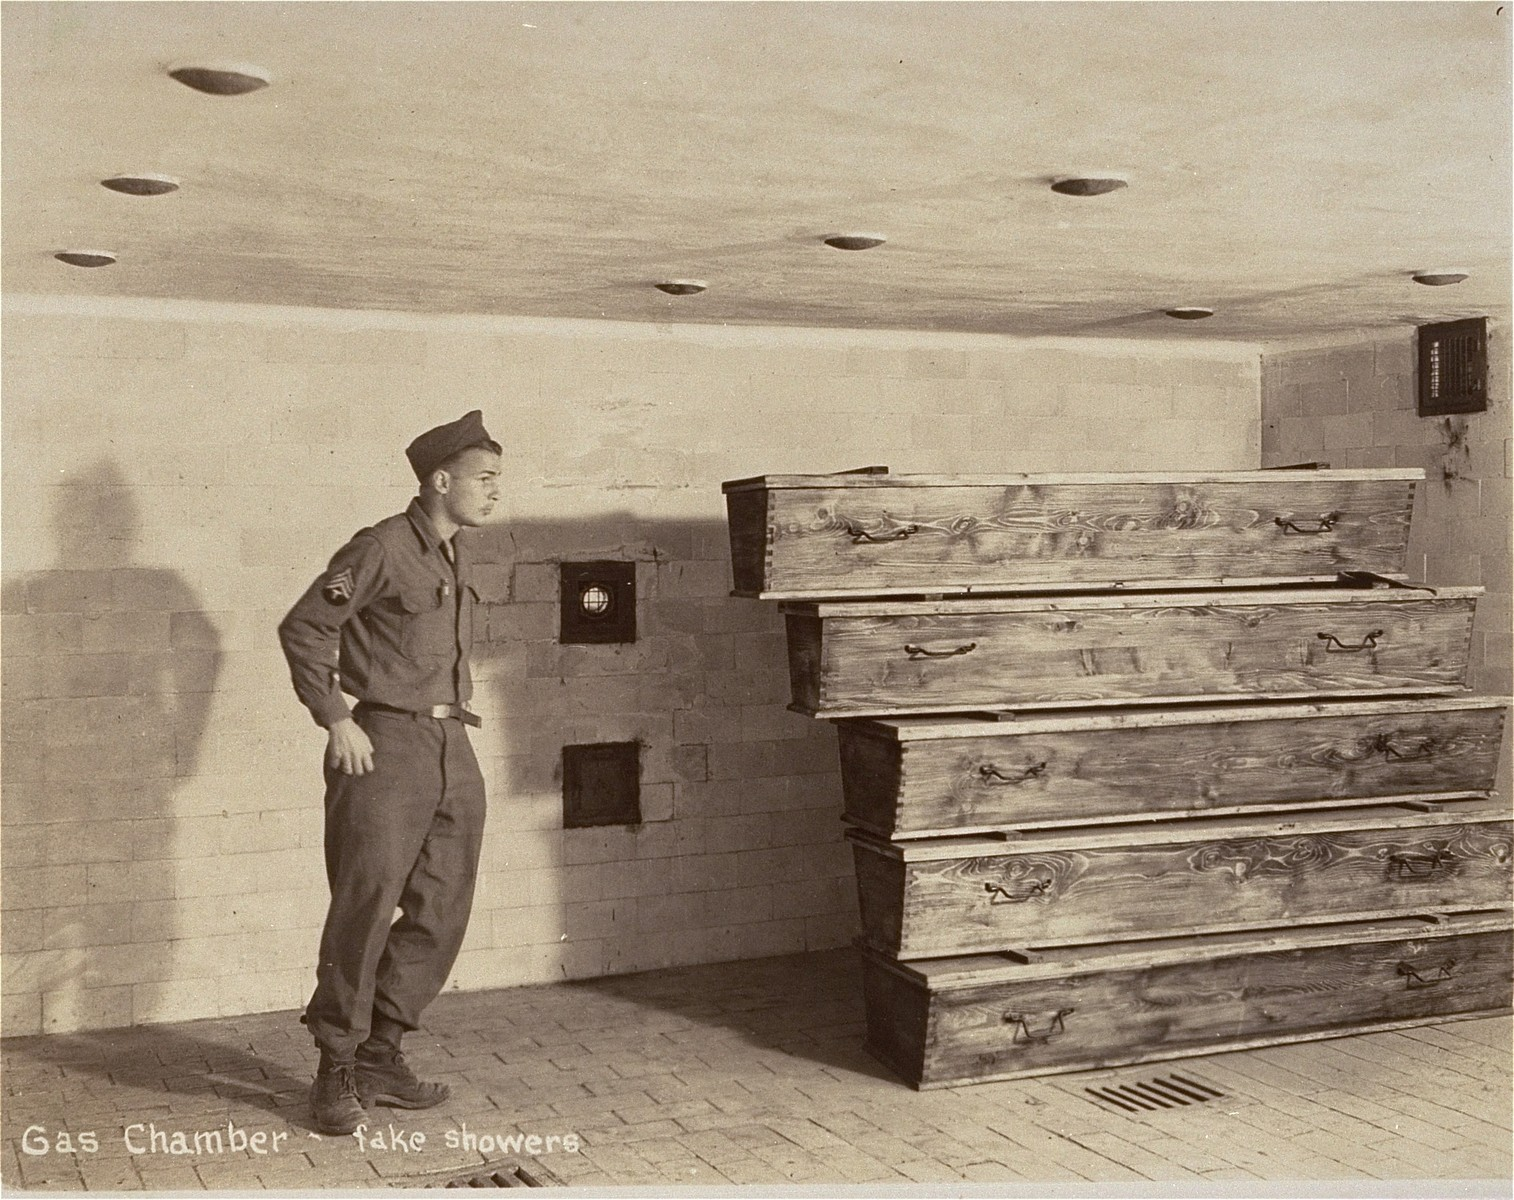 An American soldier inside the gas chamber at Dachau.  Fake shower heads can be seen on the ceiling, while on the right coffins are visible.